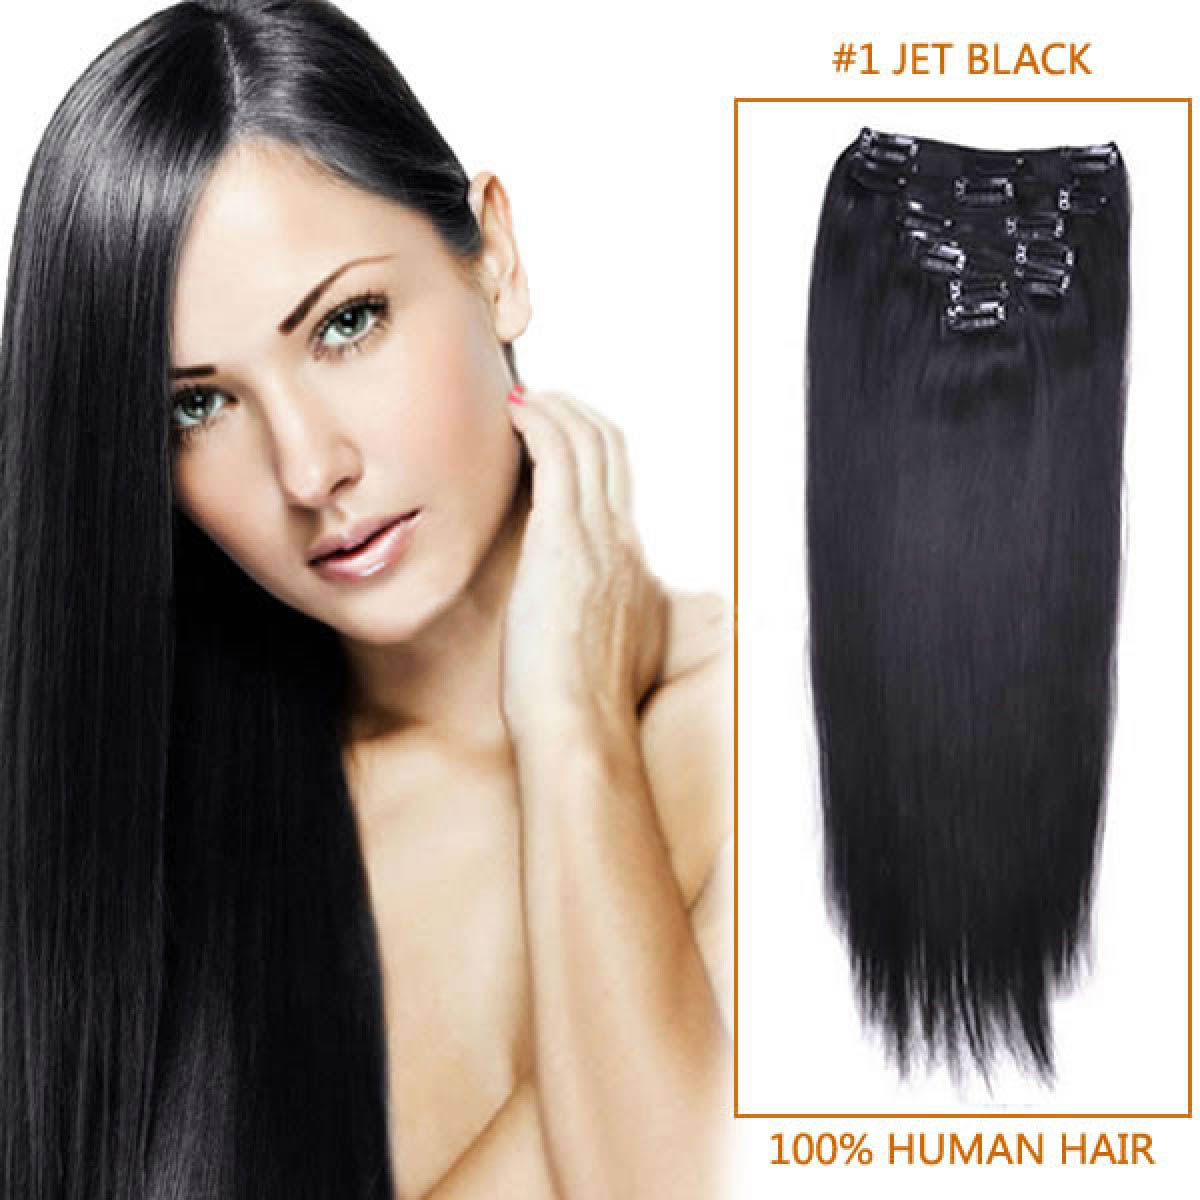 16 Inch Black Human Hair Extensions 31